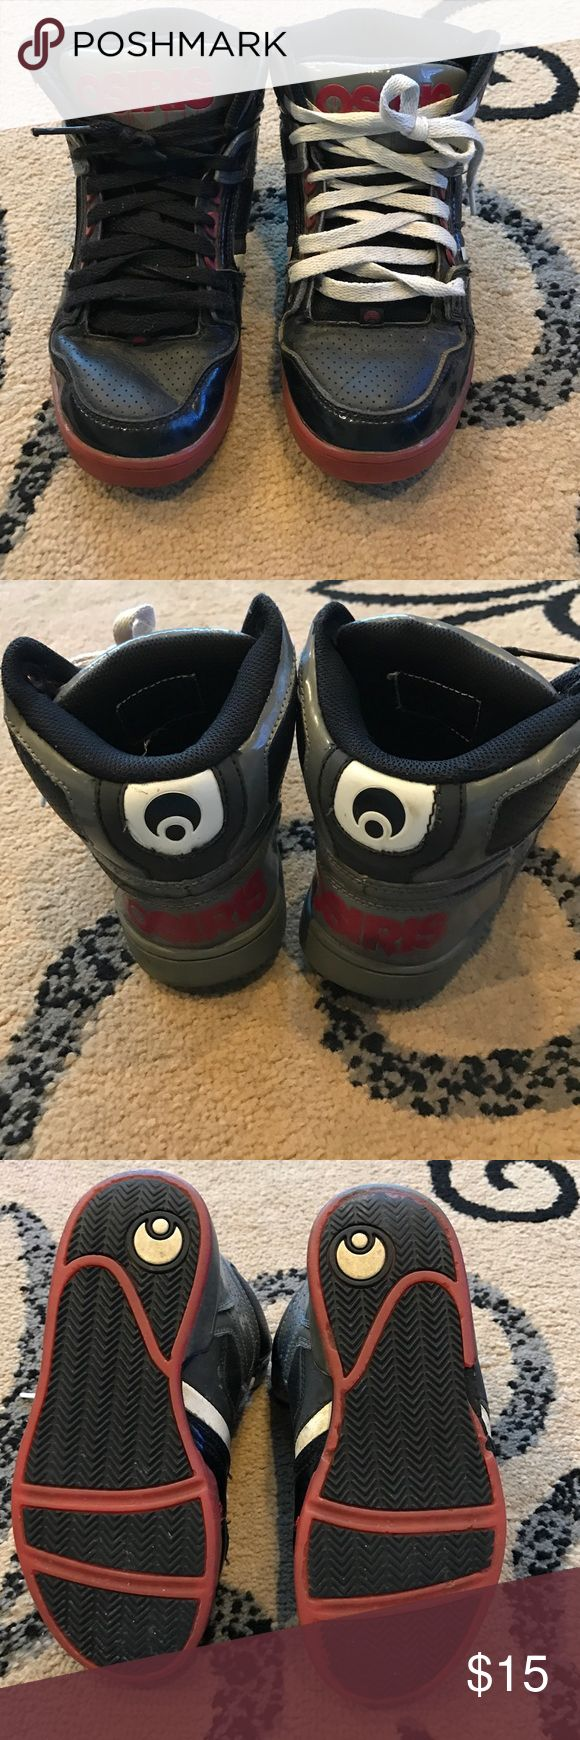 Boys Osiris Hightops Boys Osiris Hightops Size 4 Osiris Shoes Sneakers